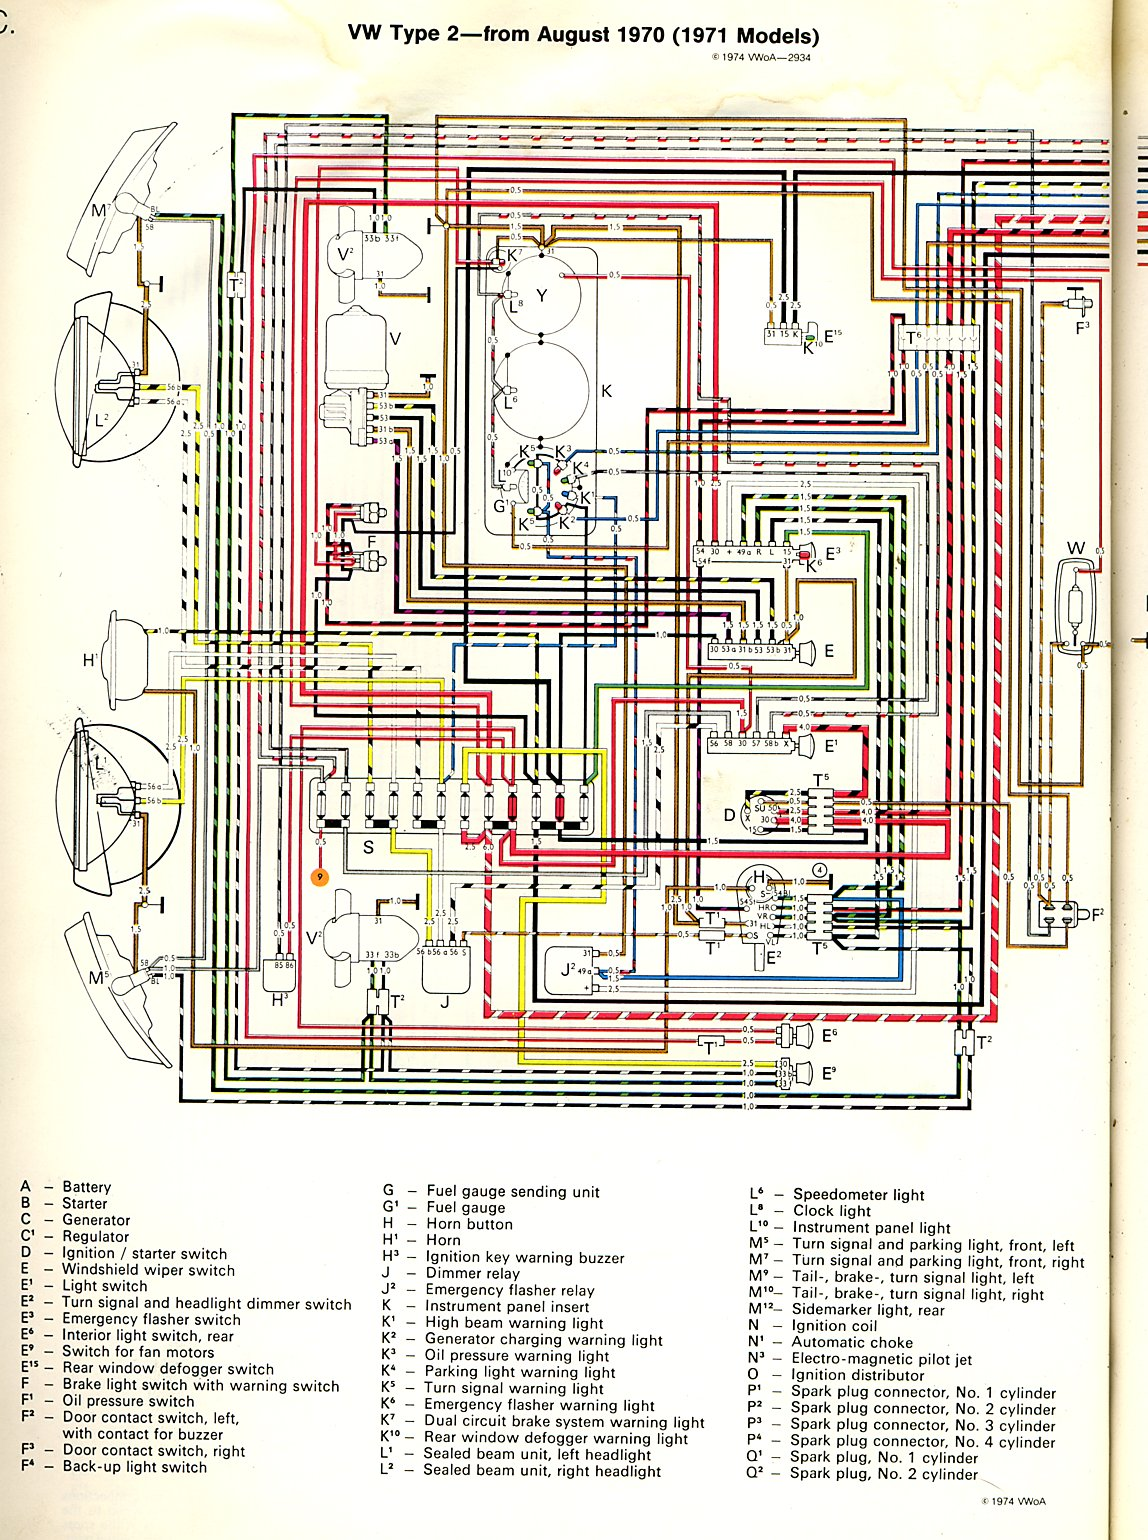 1974 Vw Bus Wiring Diagram Data O Gauge Schematic